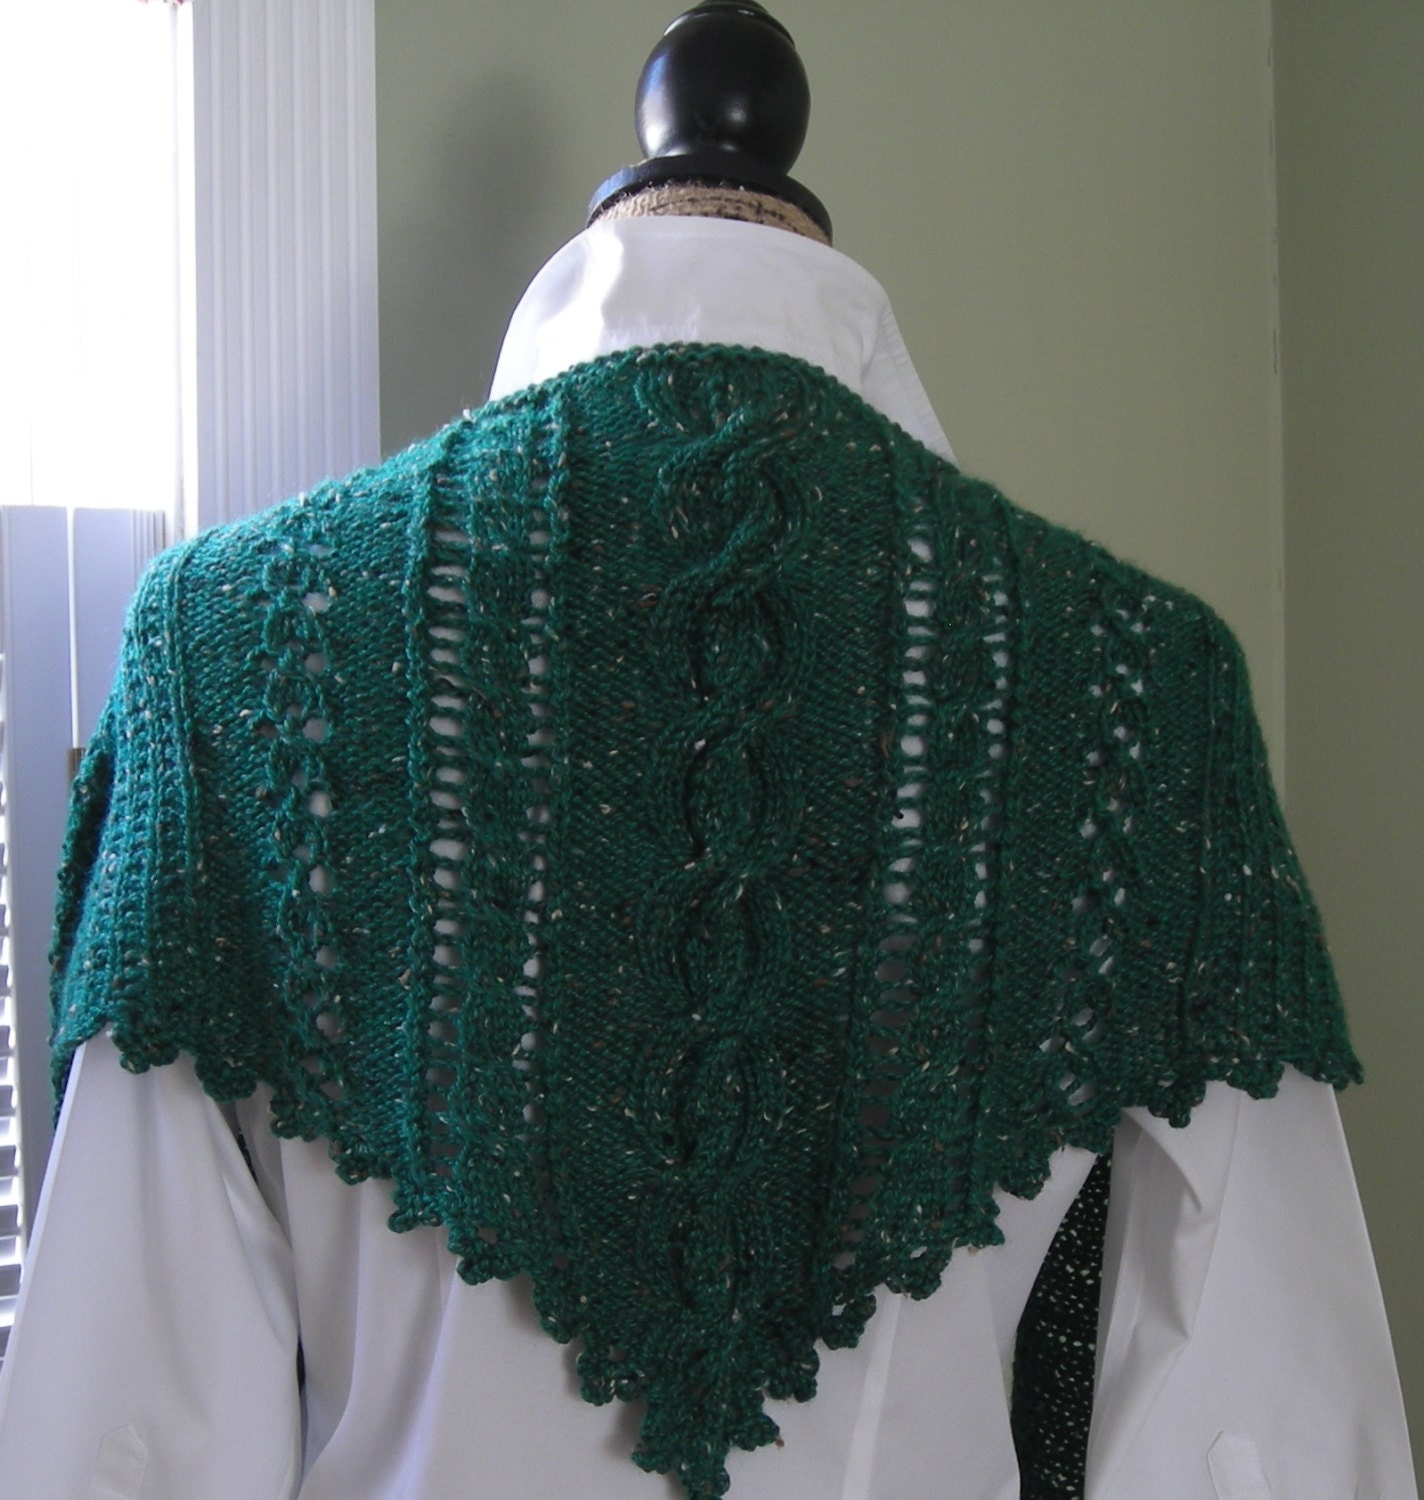 Knitting Websites Ireland : Clover lace cabled shawlette pdf knitting by lavenderhillknits